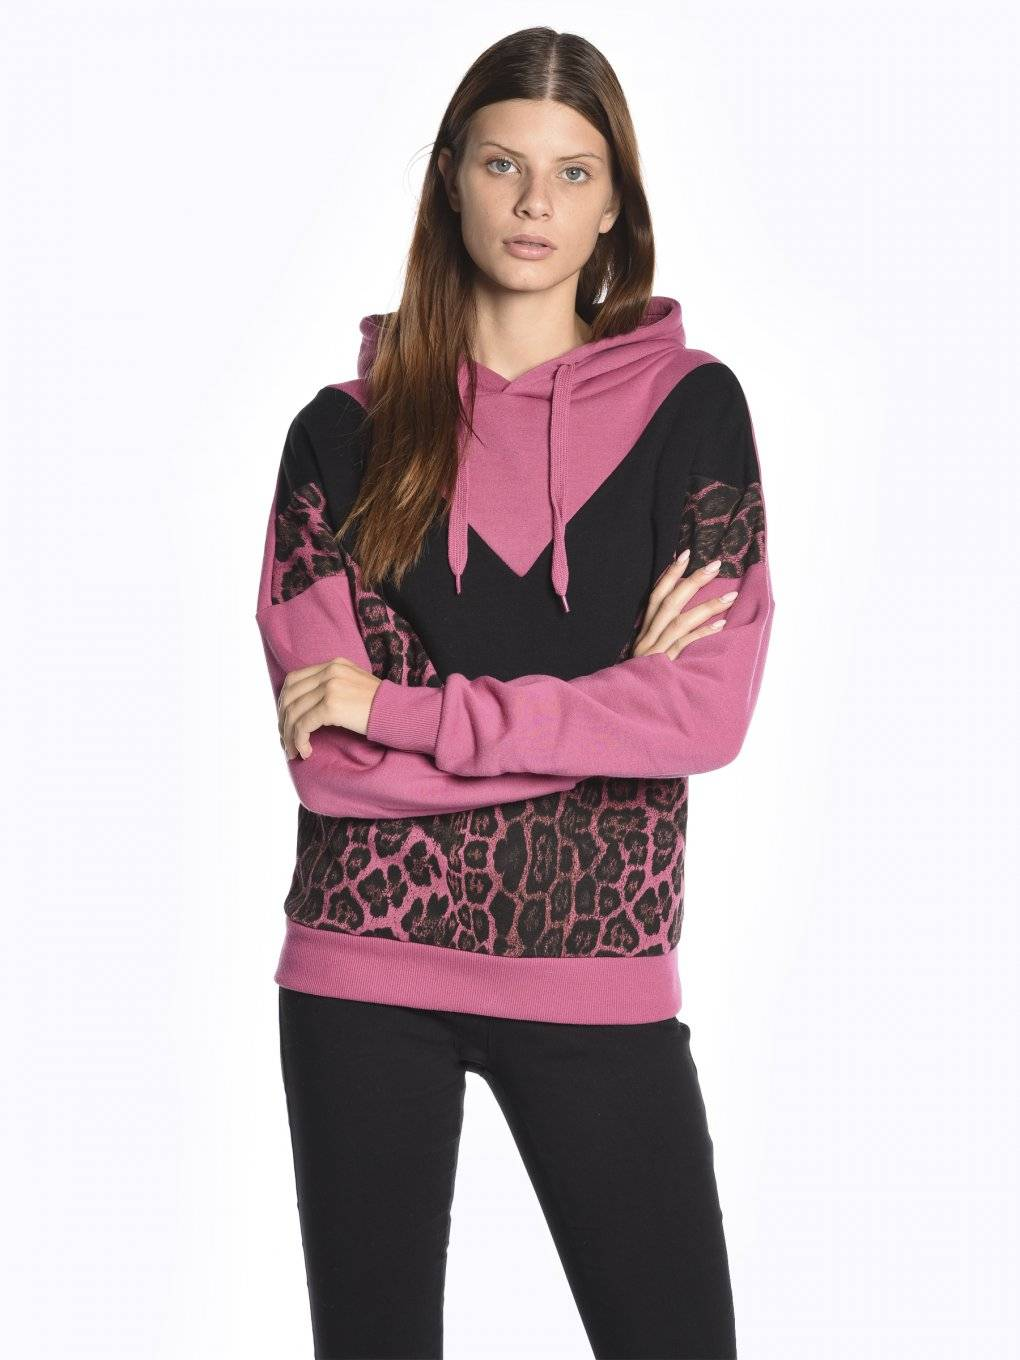 Hoodie with animal print